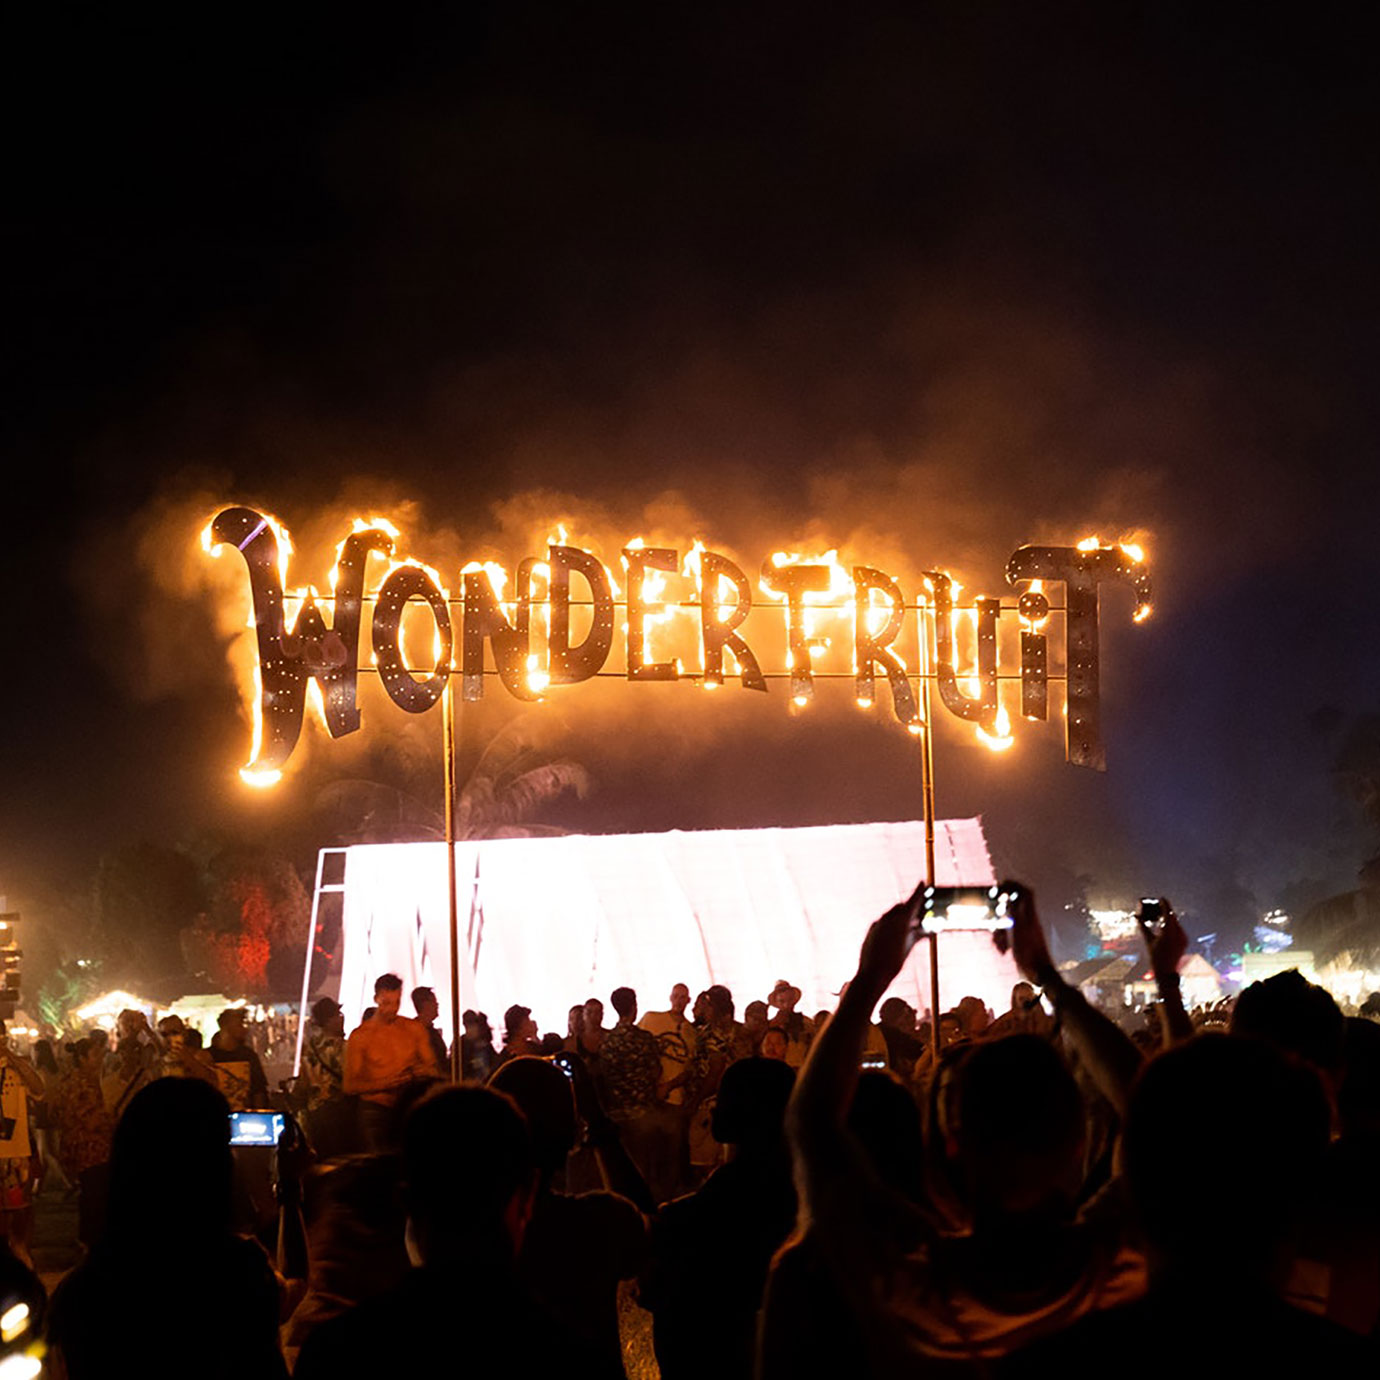 A crowd around a sign with Wonderfruit written in fire on it.